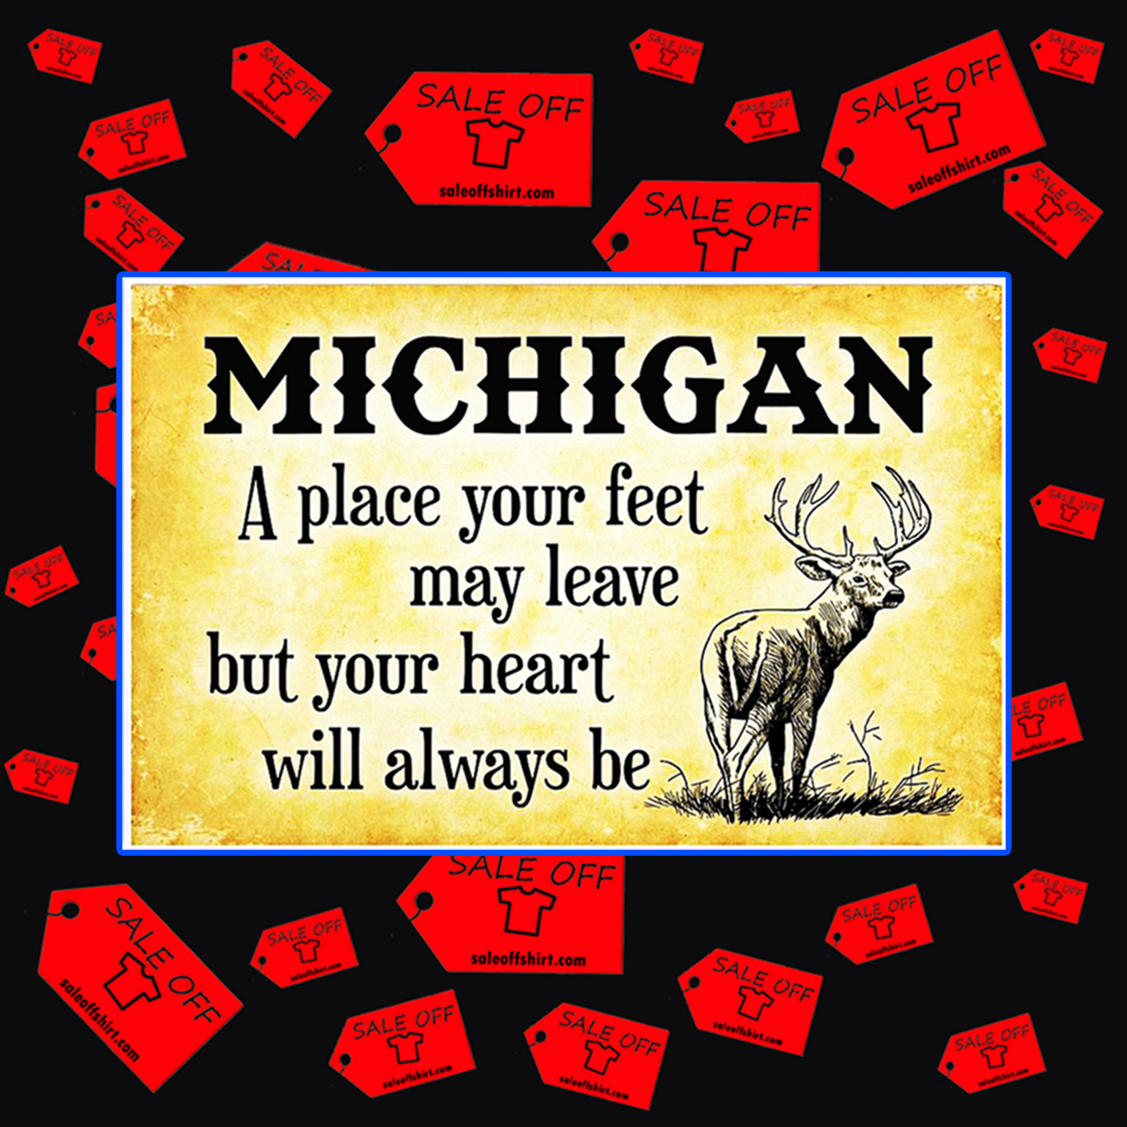 Michigan a place your feet may leave but your heart will always be poster 36x24